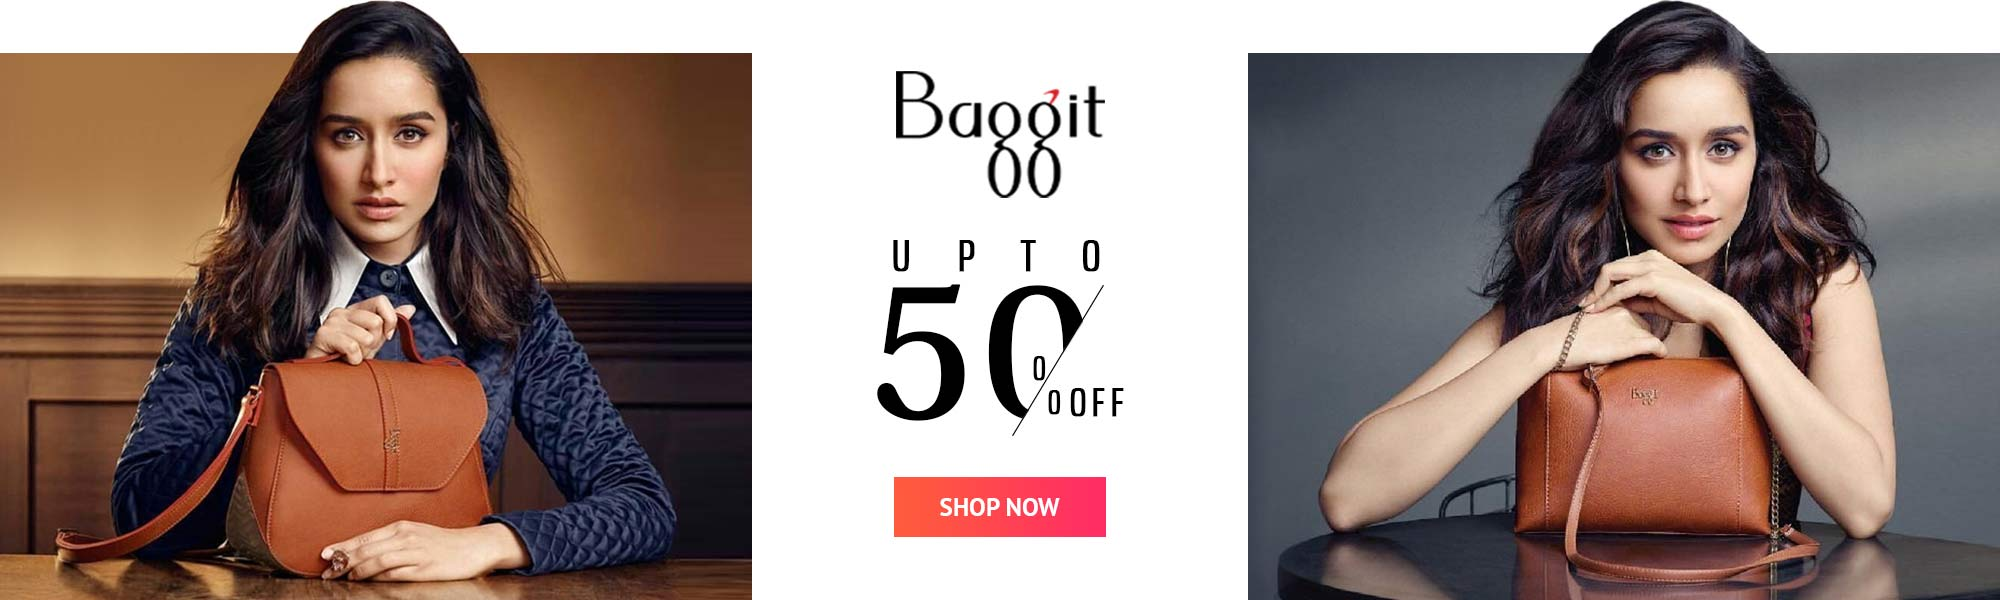 Baggit Offer